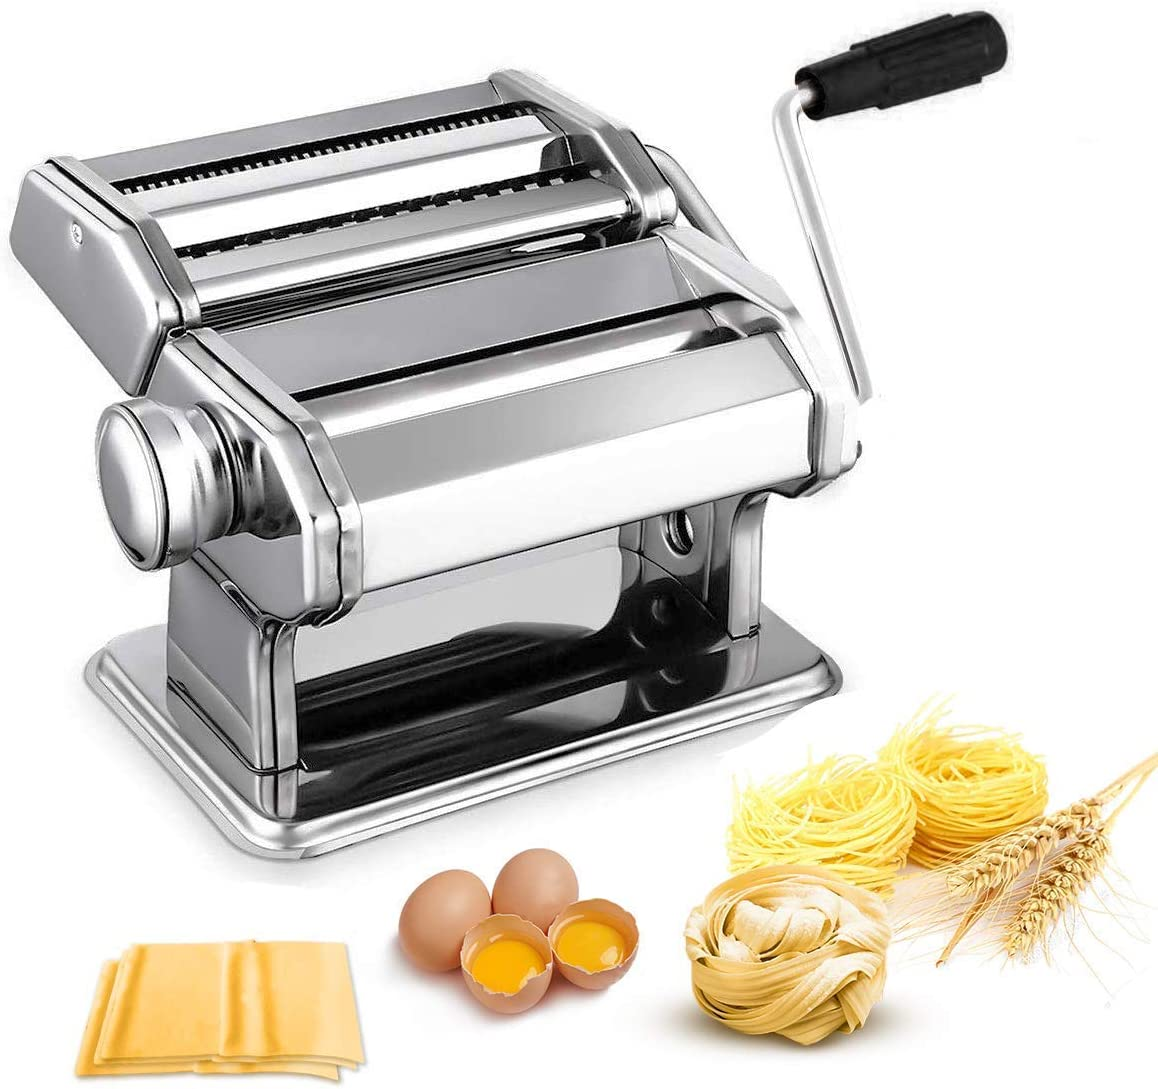 Amazon Com Pasta Maker Machine Noeler Pasta Crank Stainless Steel Pasta Roller Machine Manual Noodle Maker Pasta Cutters With 2 Blades Make Fresh Spaghetti Or Fettuccini Kitchen Dining